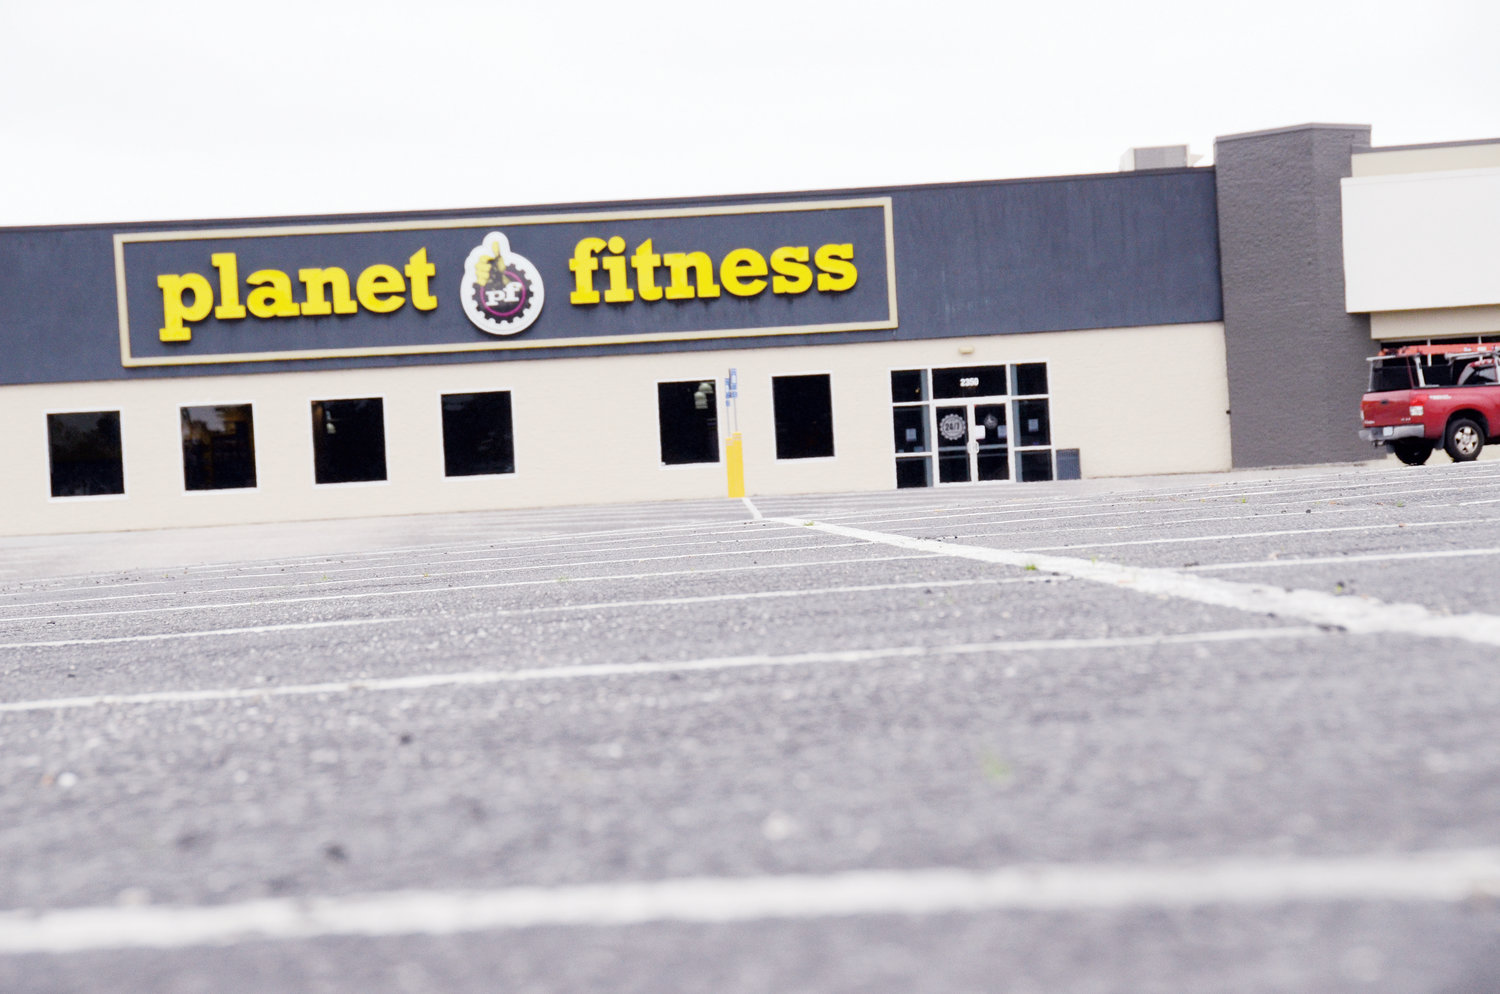 Usually full of cars, the parking lot outside of Planet Fitness sits empty Tuesday after the governor ordered certain businesses like gyms and spas to shut down through May due to COVID-19.